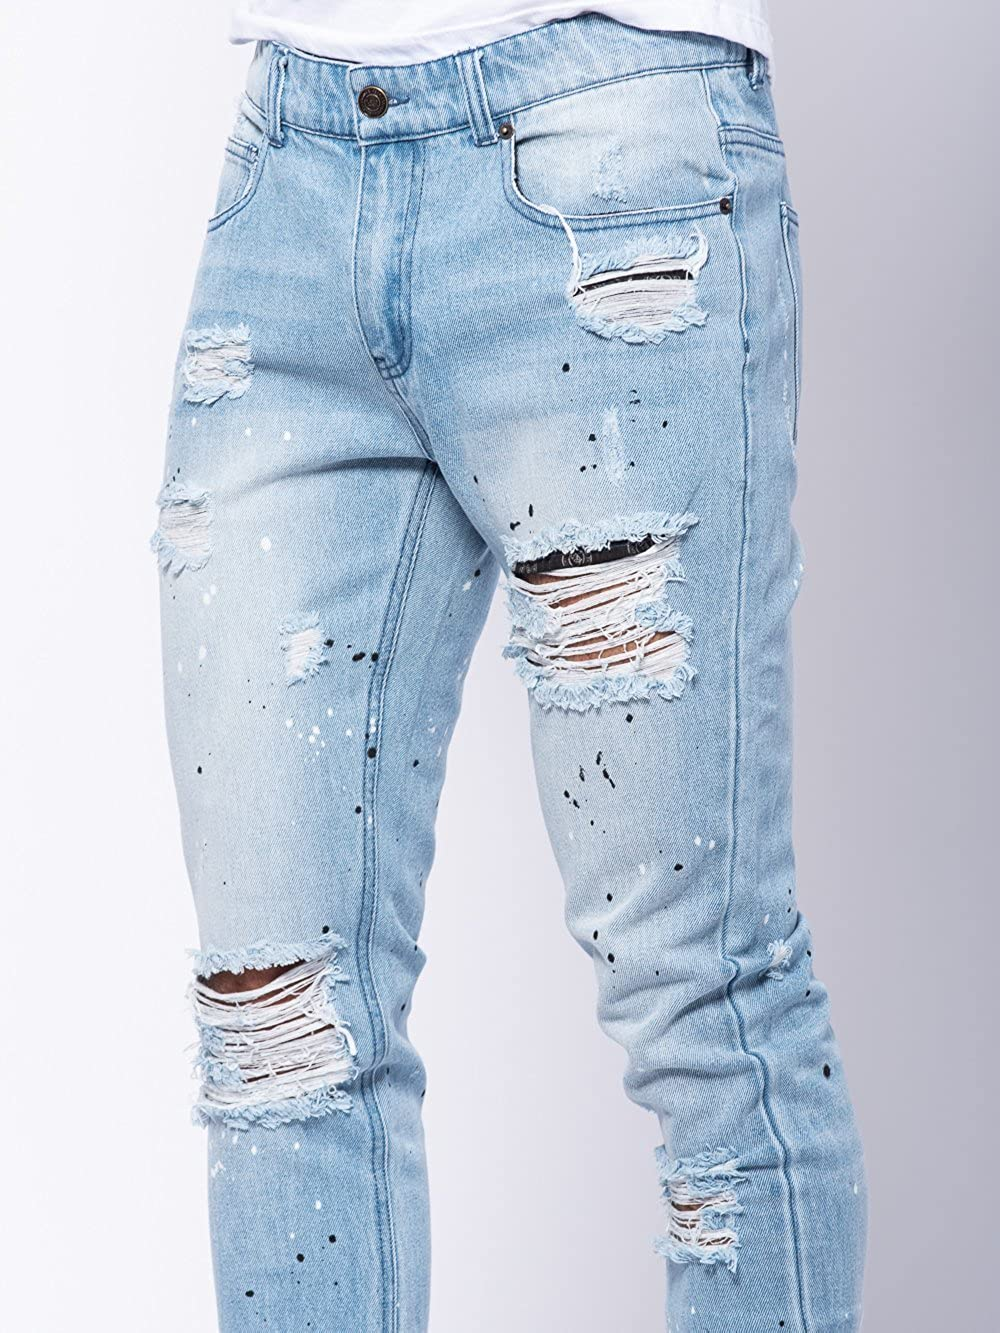 f6a9268b7 ... Young and Reckless - Lancaster Tapered Jeans - Light Blue - - Mens -  Bottoms ...